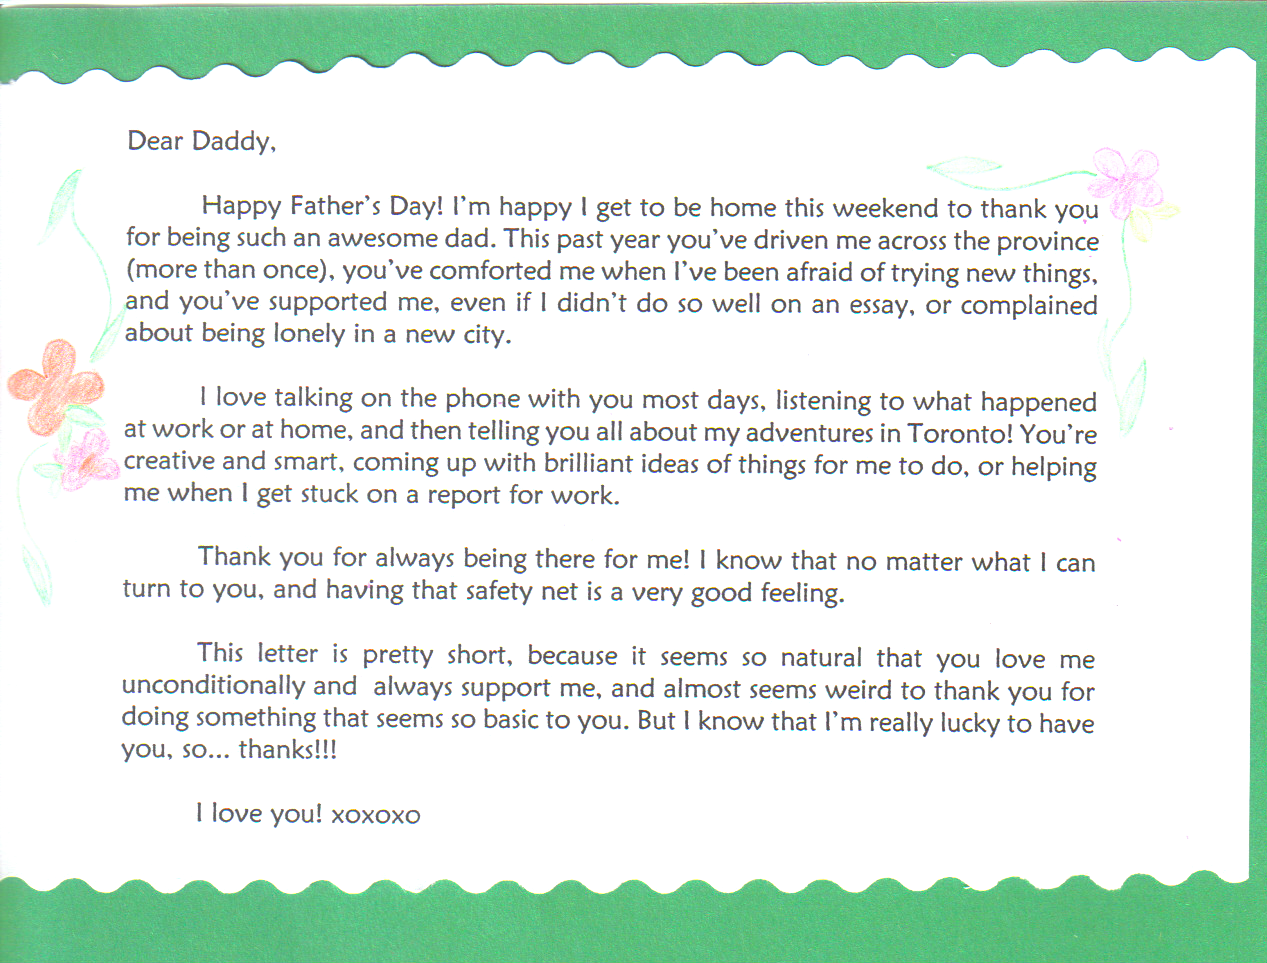 so wish your dad a happy fathers day and people write some letters and send them to us we know you think its a good idea